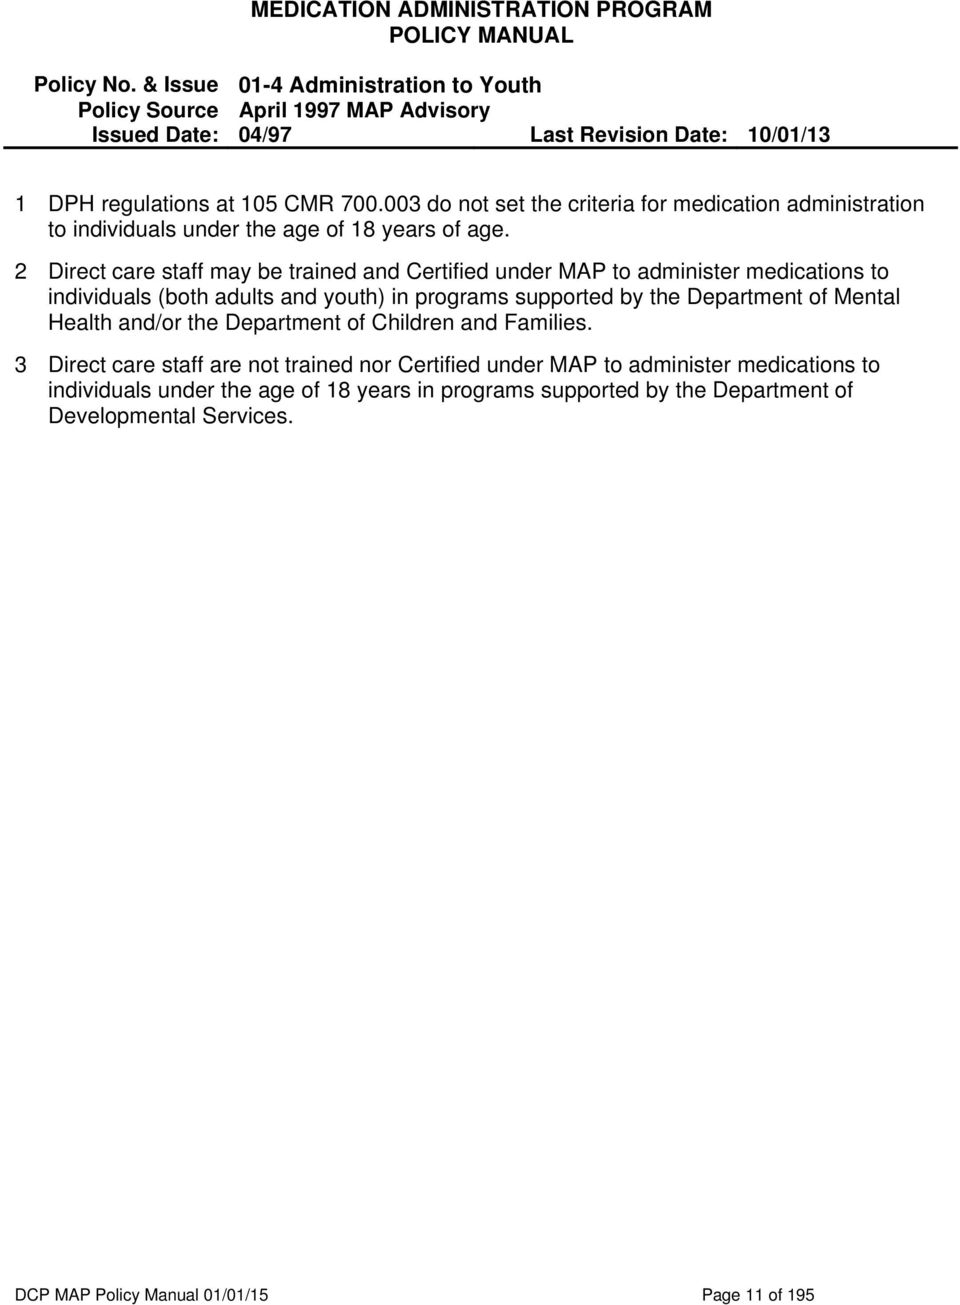 003 do not set the criteria for medication administration to individuals  under the age of 18